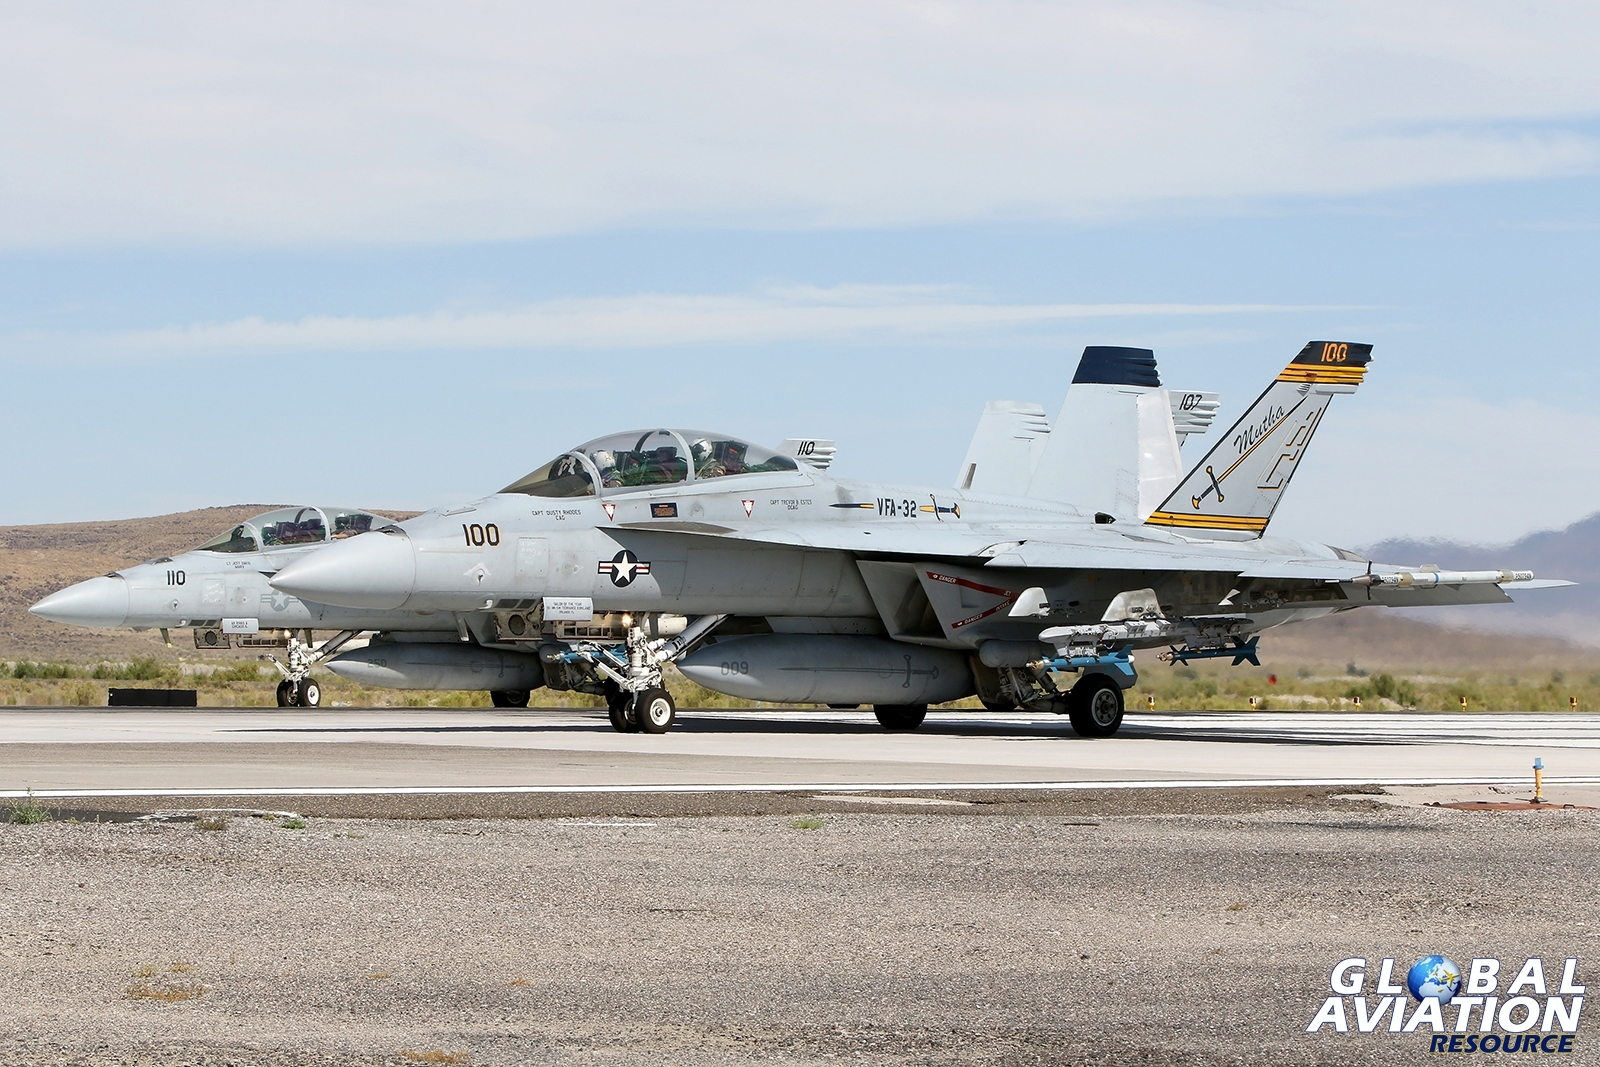 Three F/A-18Fs from VFA-32 about to depart from Fallon © Paul Dunn - Global Aviation Resource